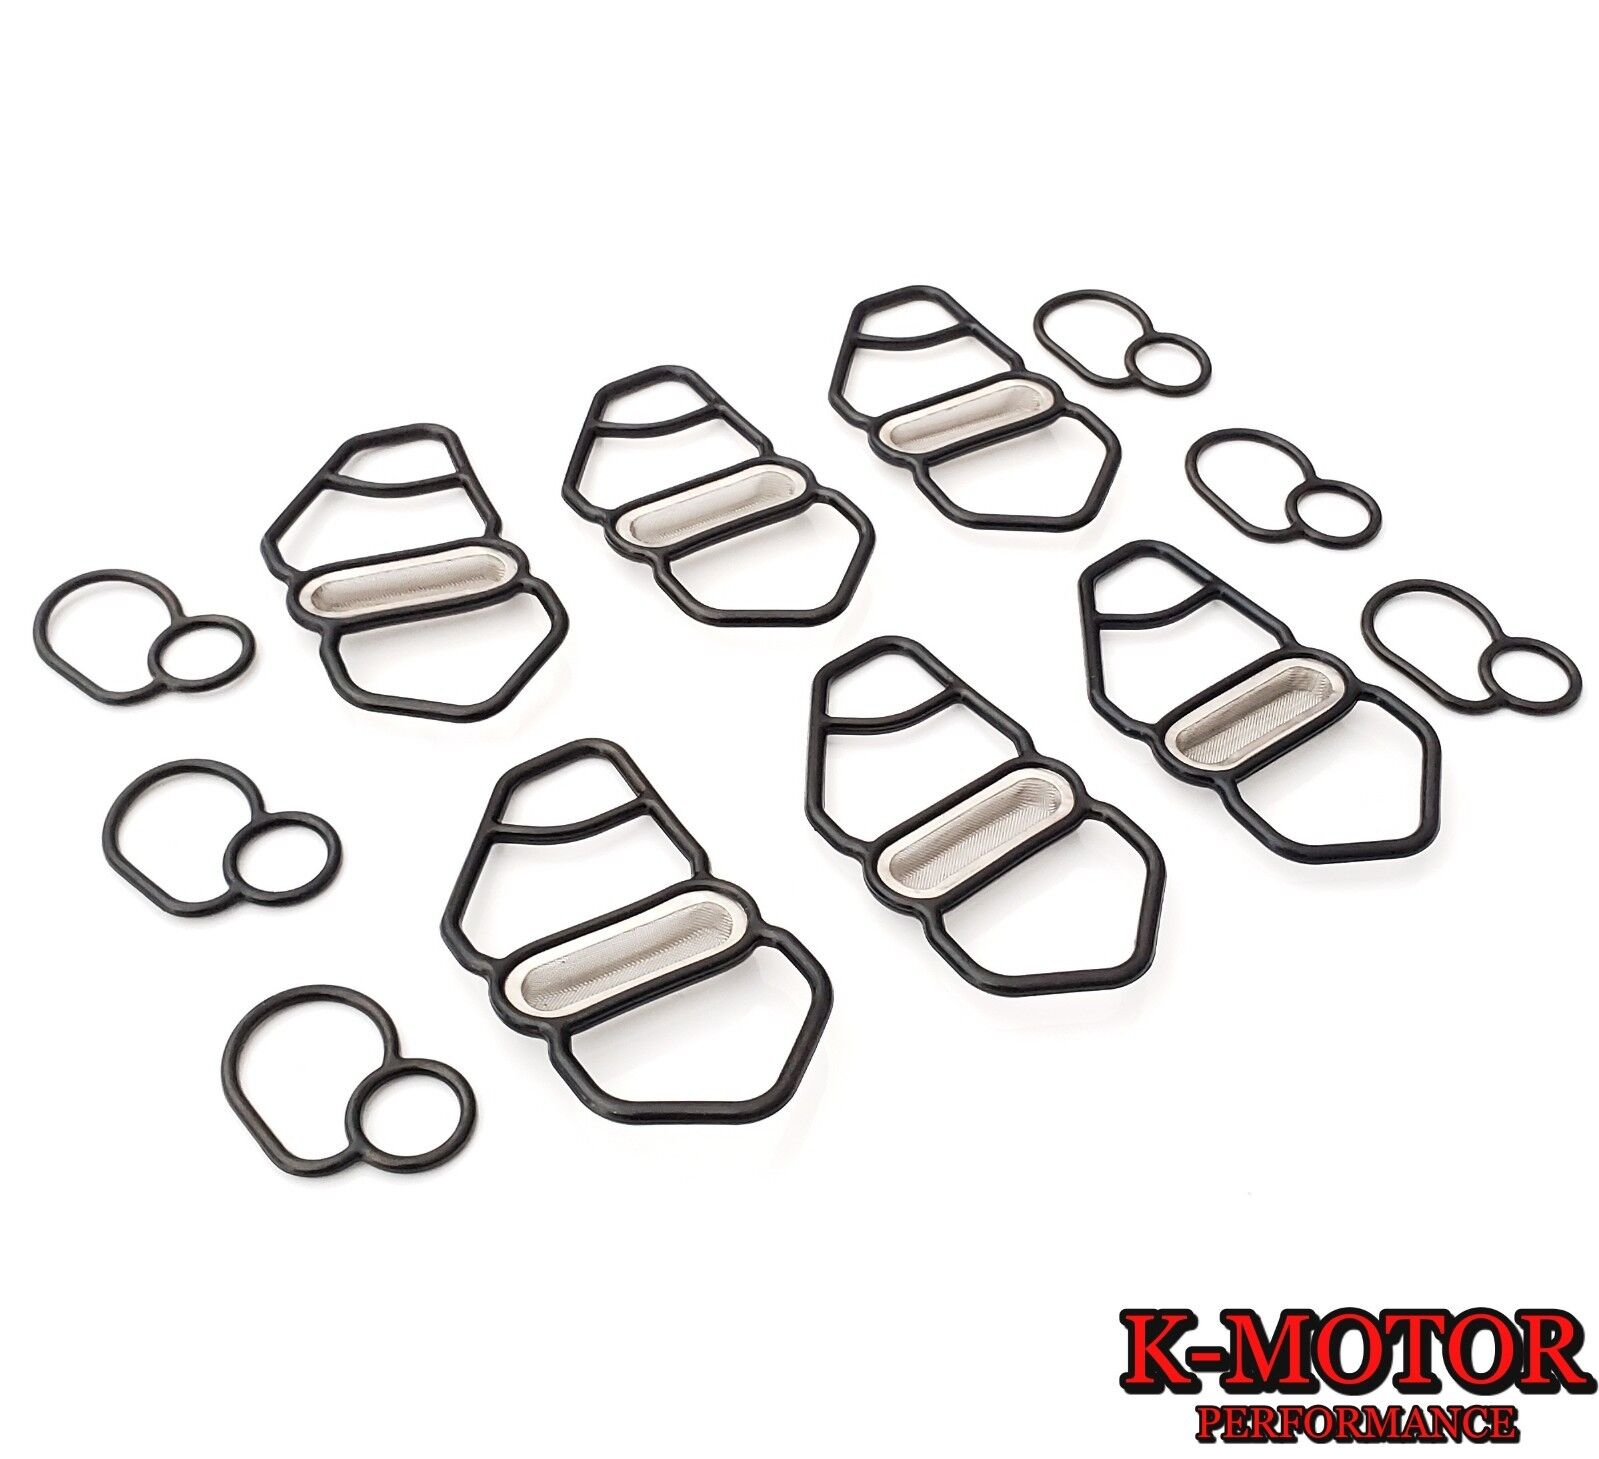 Vtec Solenoid Gasket Wholesale For Honda Civic And Integra